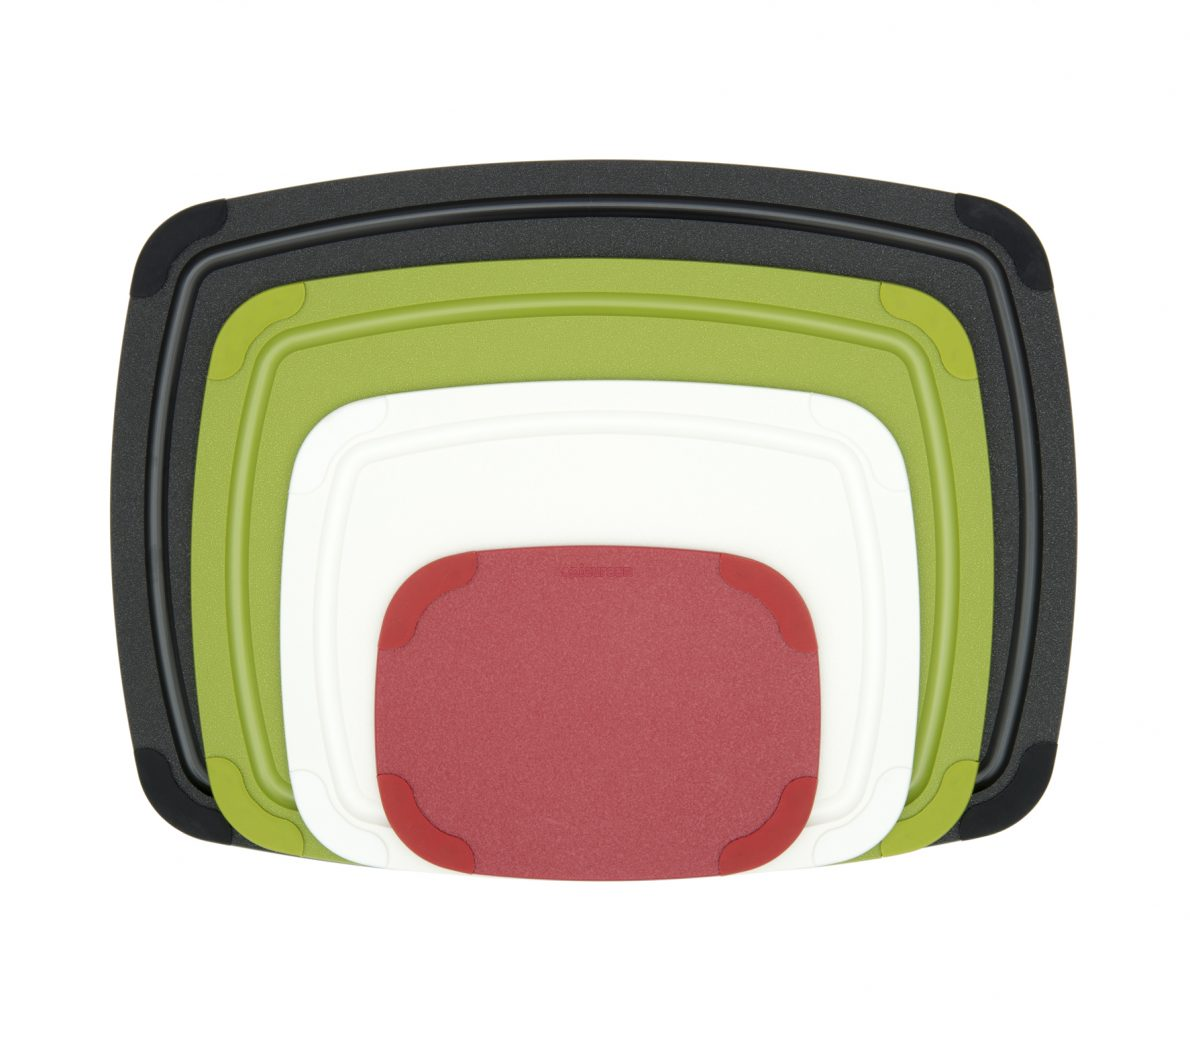 epicurean-cutting-board-poly-series-color-variations-1190×1038